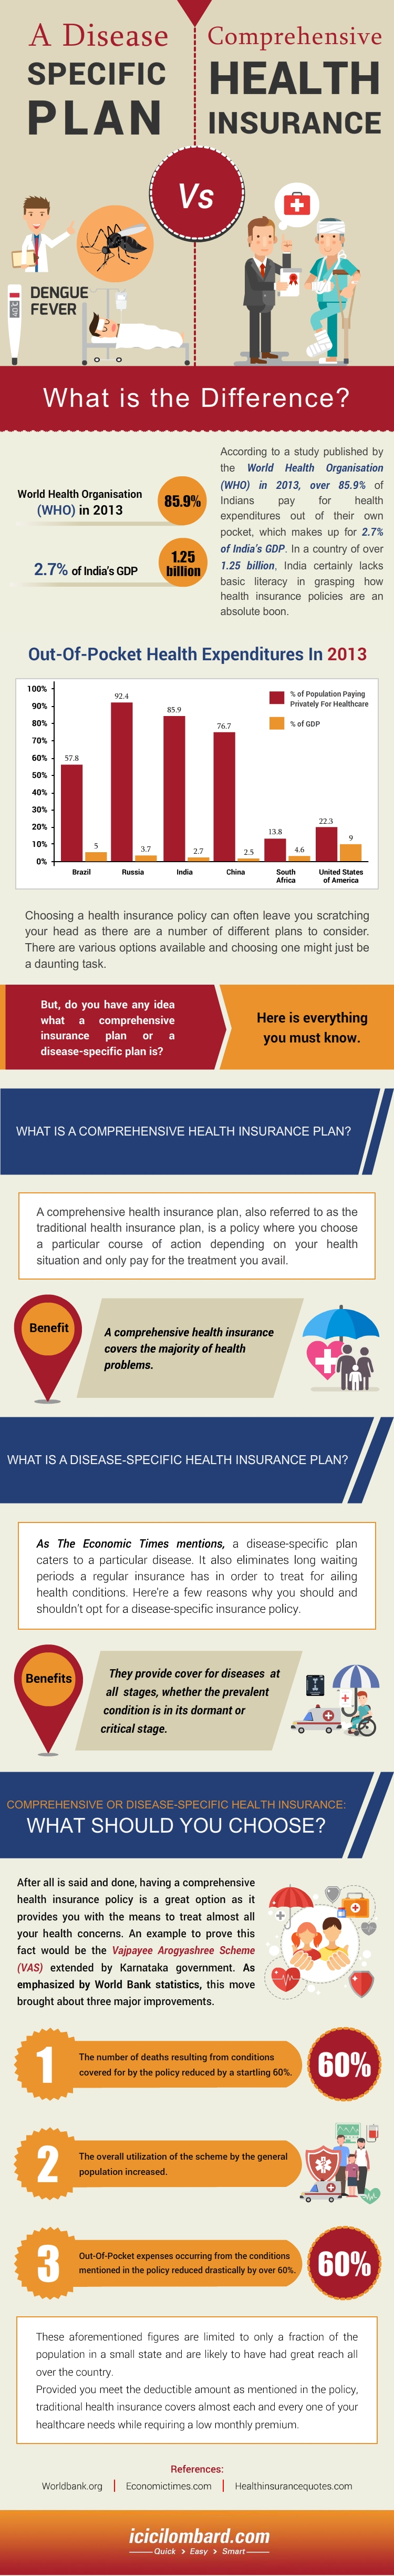 A Disease Specific Plan vs. Comprehensive Health Insurance